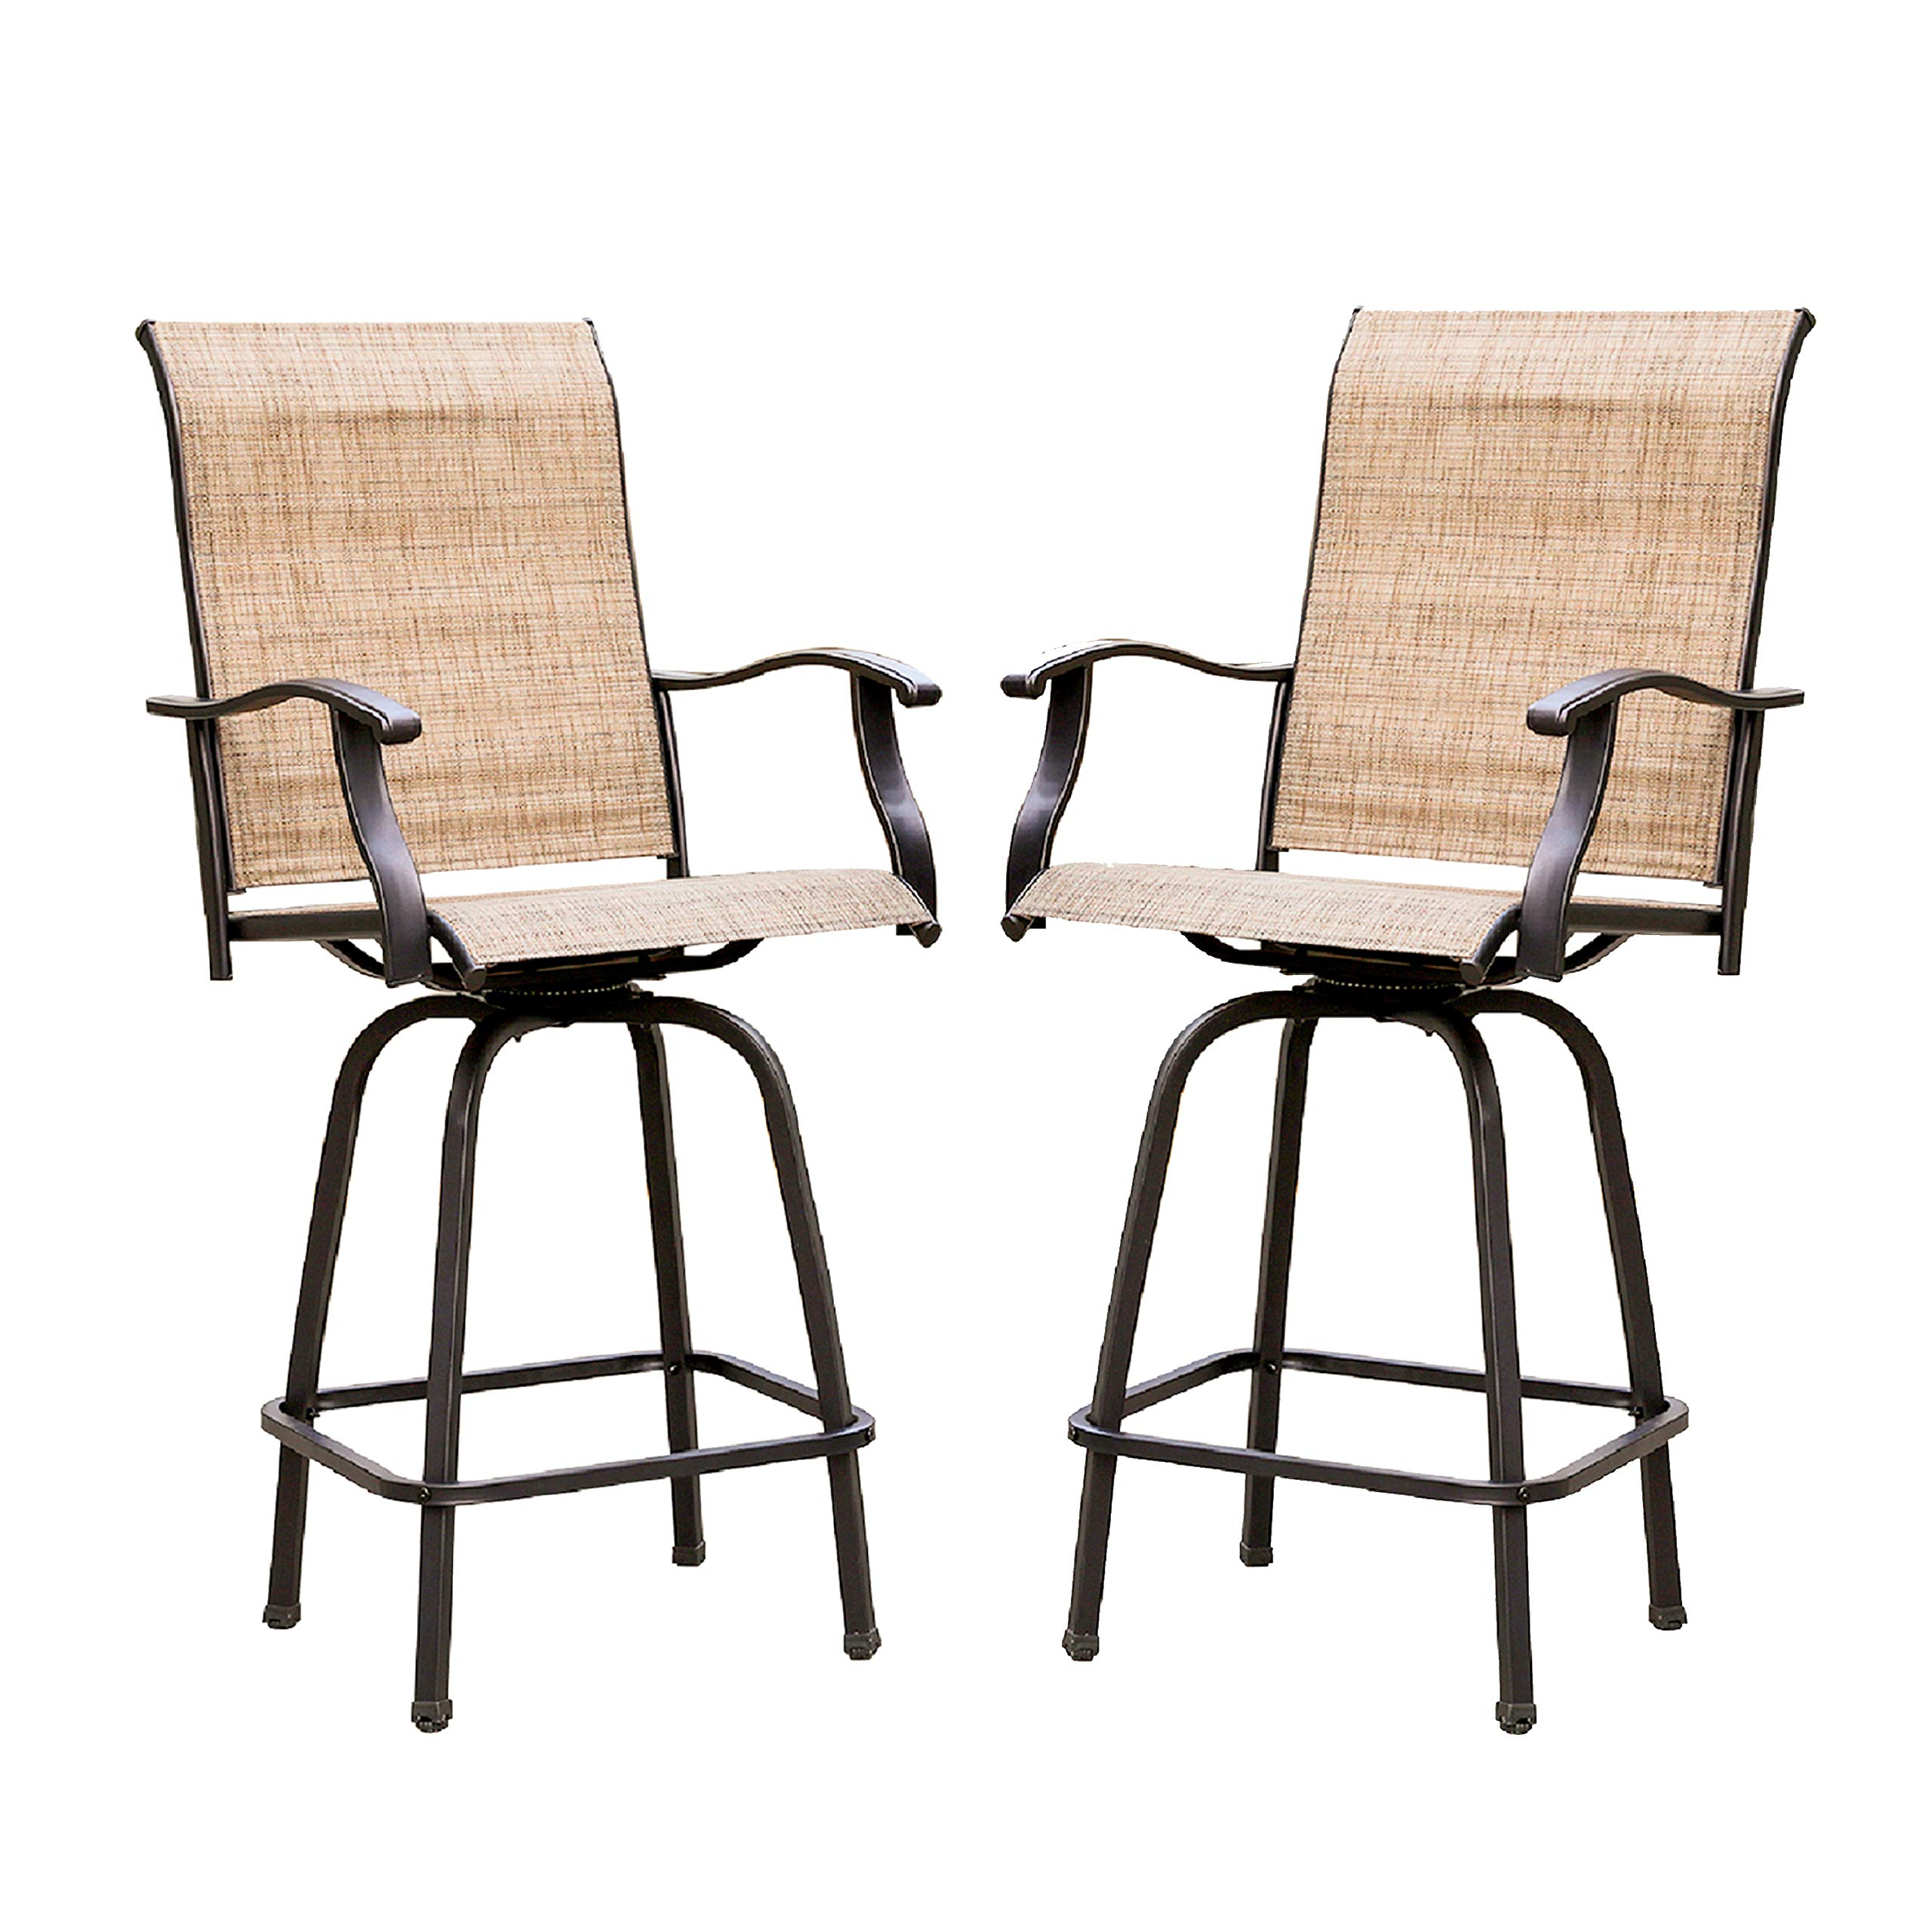 Fine Lokatse Home 2 Piece Swivel Bar Stools Outdoor High Patio Furniture With All Weather Metal Frame 2 Chairs Andrewgaddart Wooden Chair Designs For Living Room Andrewgaddartcom